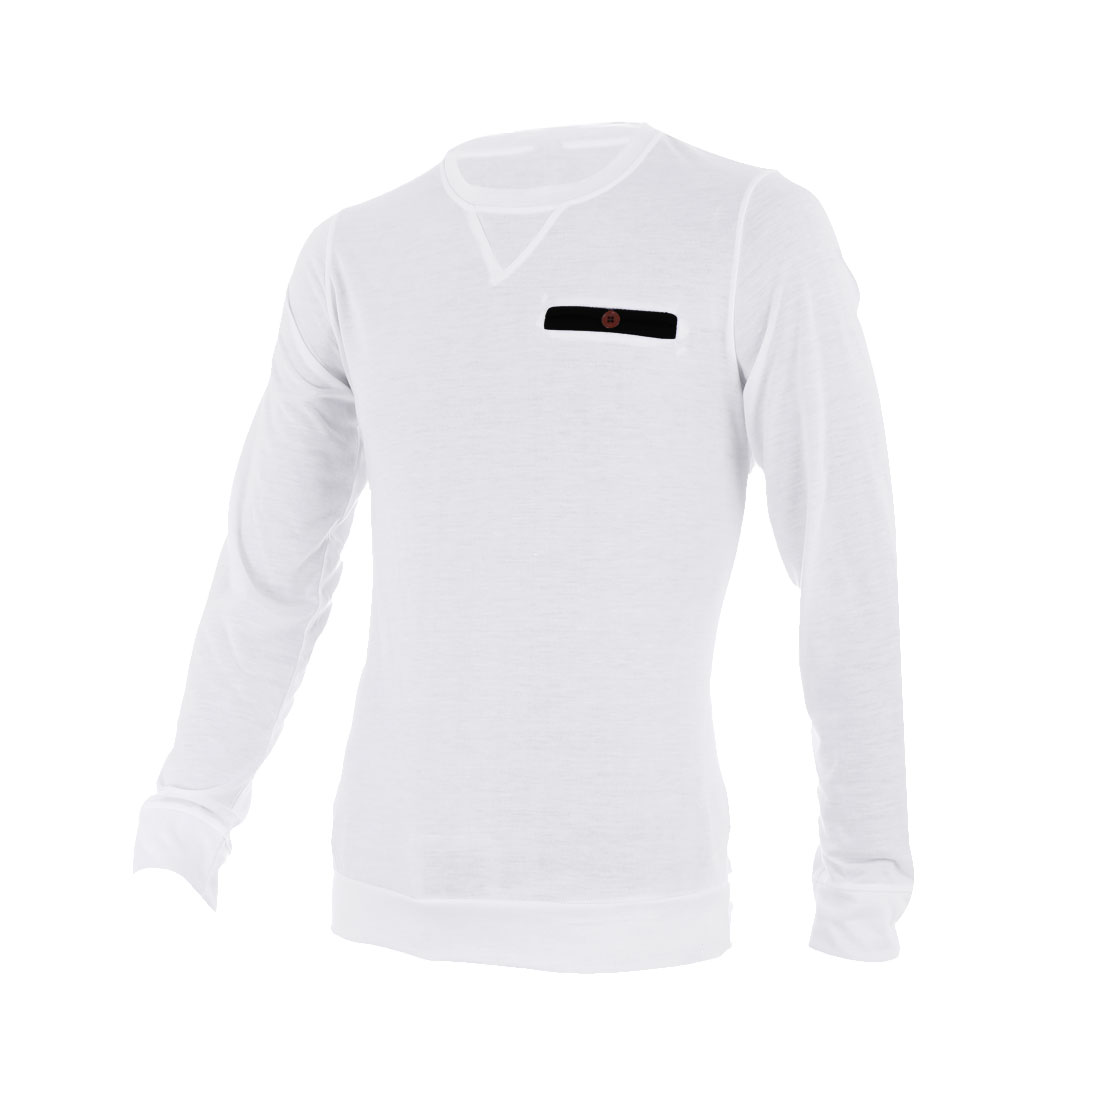 Men Round Neck Long Sleeve Button Decor Pocket Shirt White M